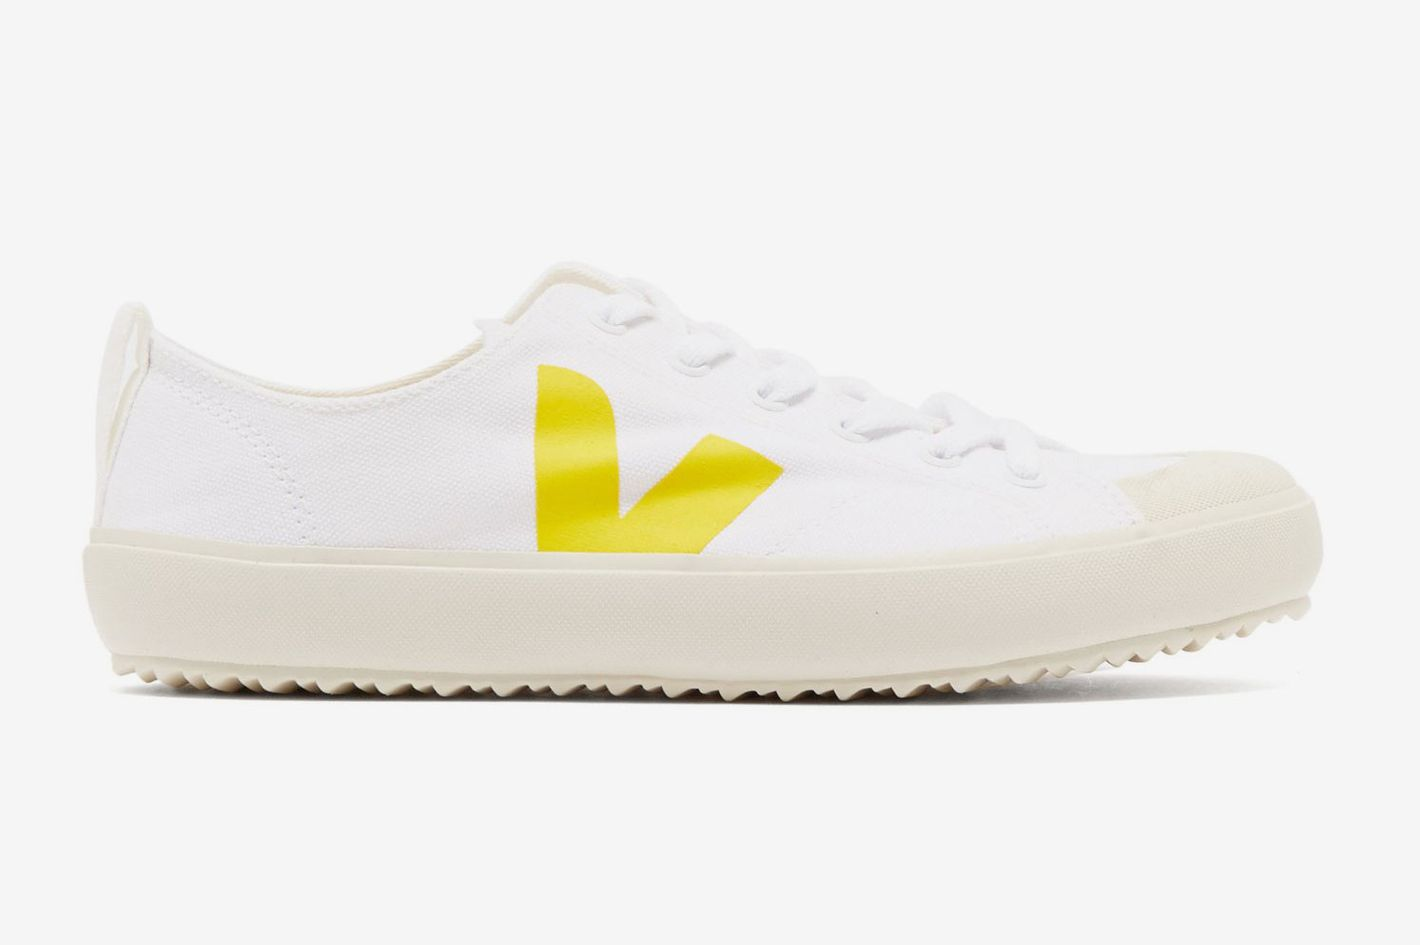 79eb96a4e25b Best Spring Sneakers for Women 2019